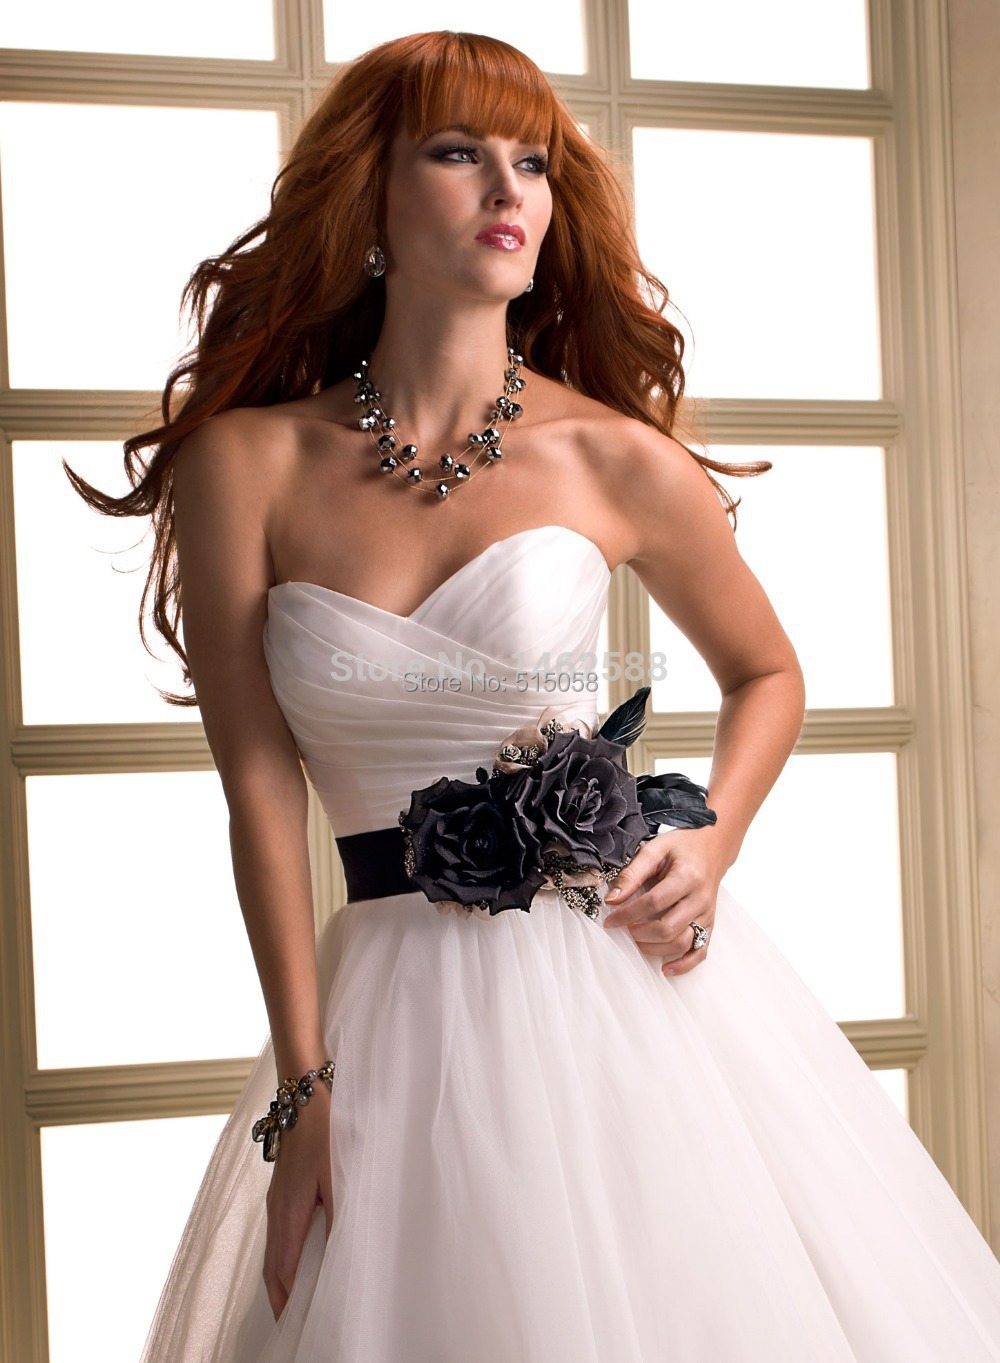 Pleated sweetheart black sashes with handmade flowers white tulle pleated sweetheart black sashes with handmade flowers white tulle wedding dress princess 2015 new elegant bridal gowns in wedding dresses from weddings mightylinksfo